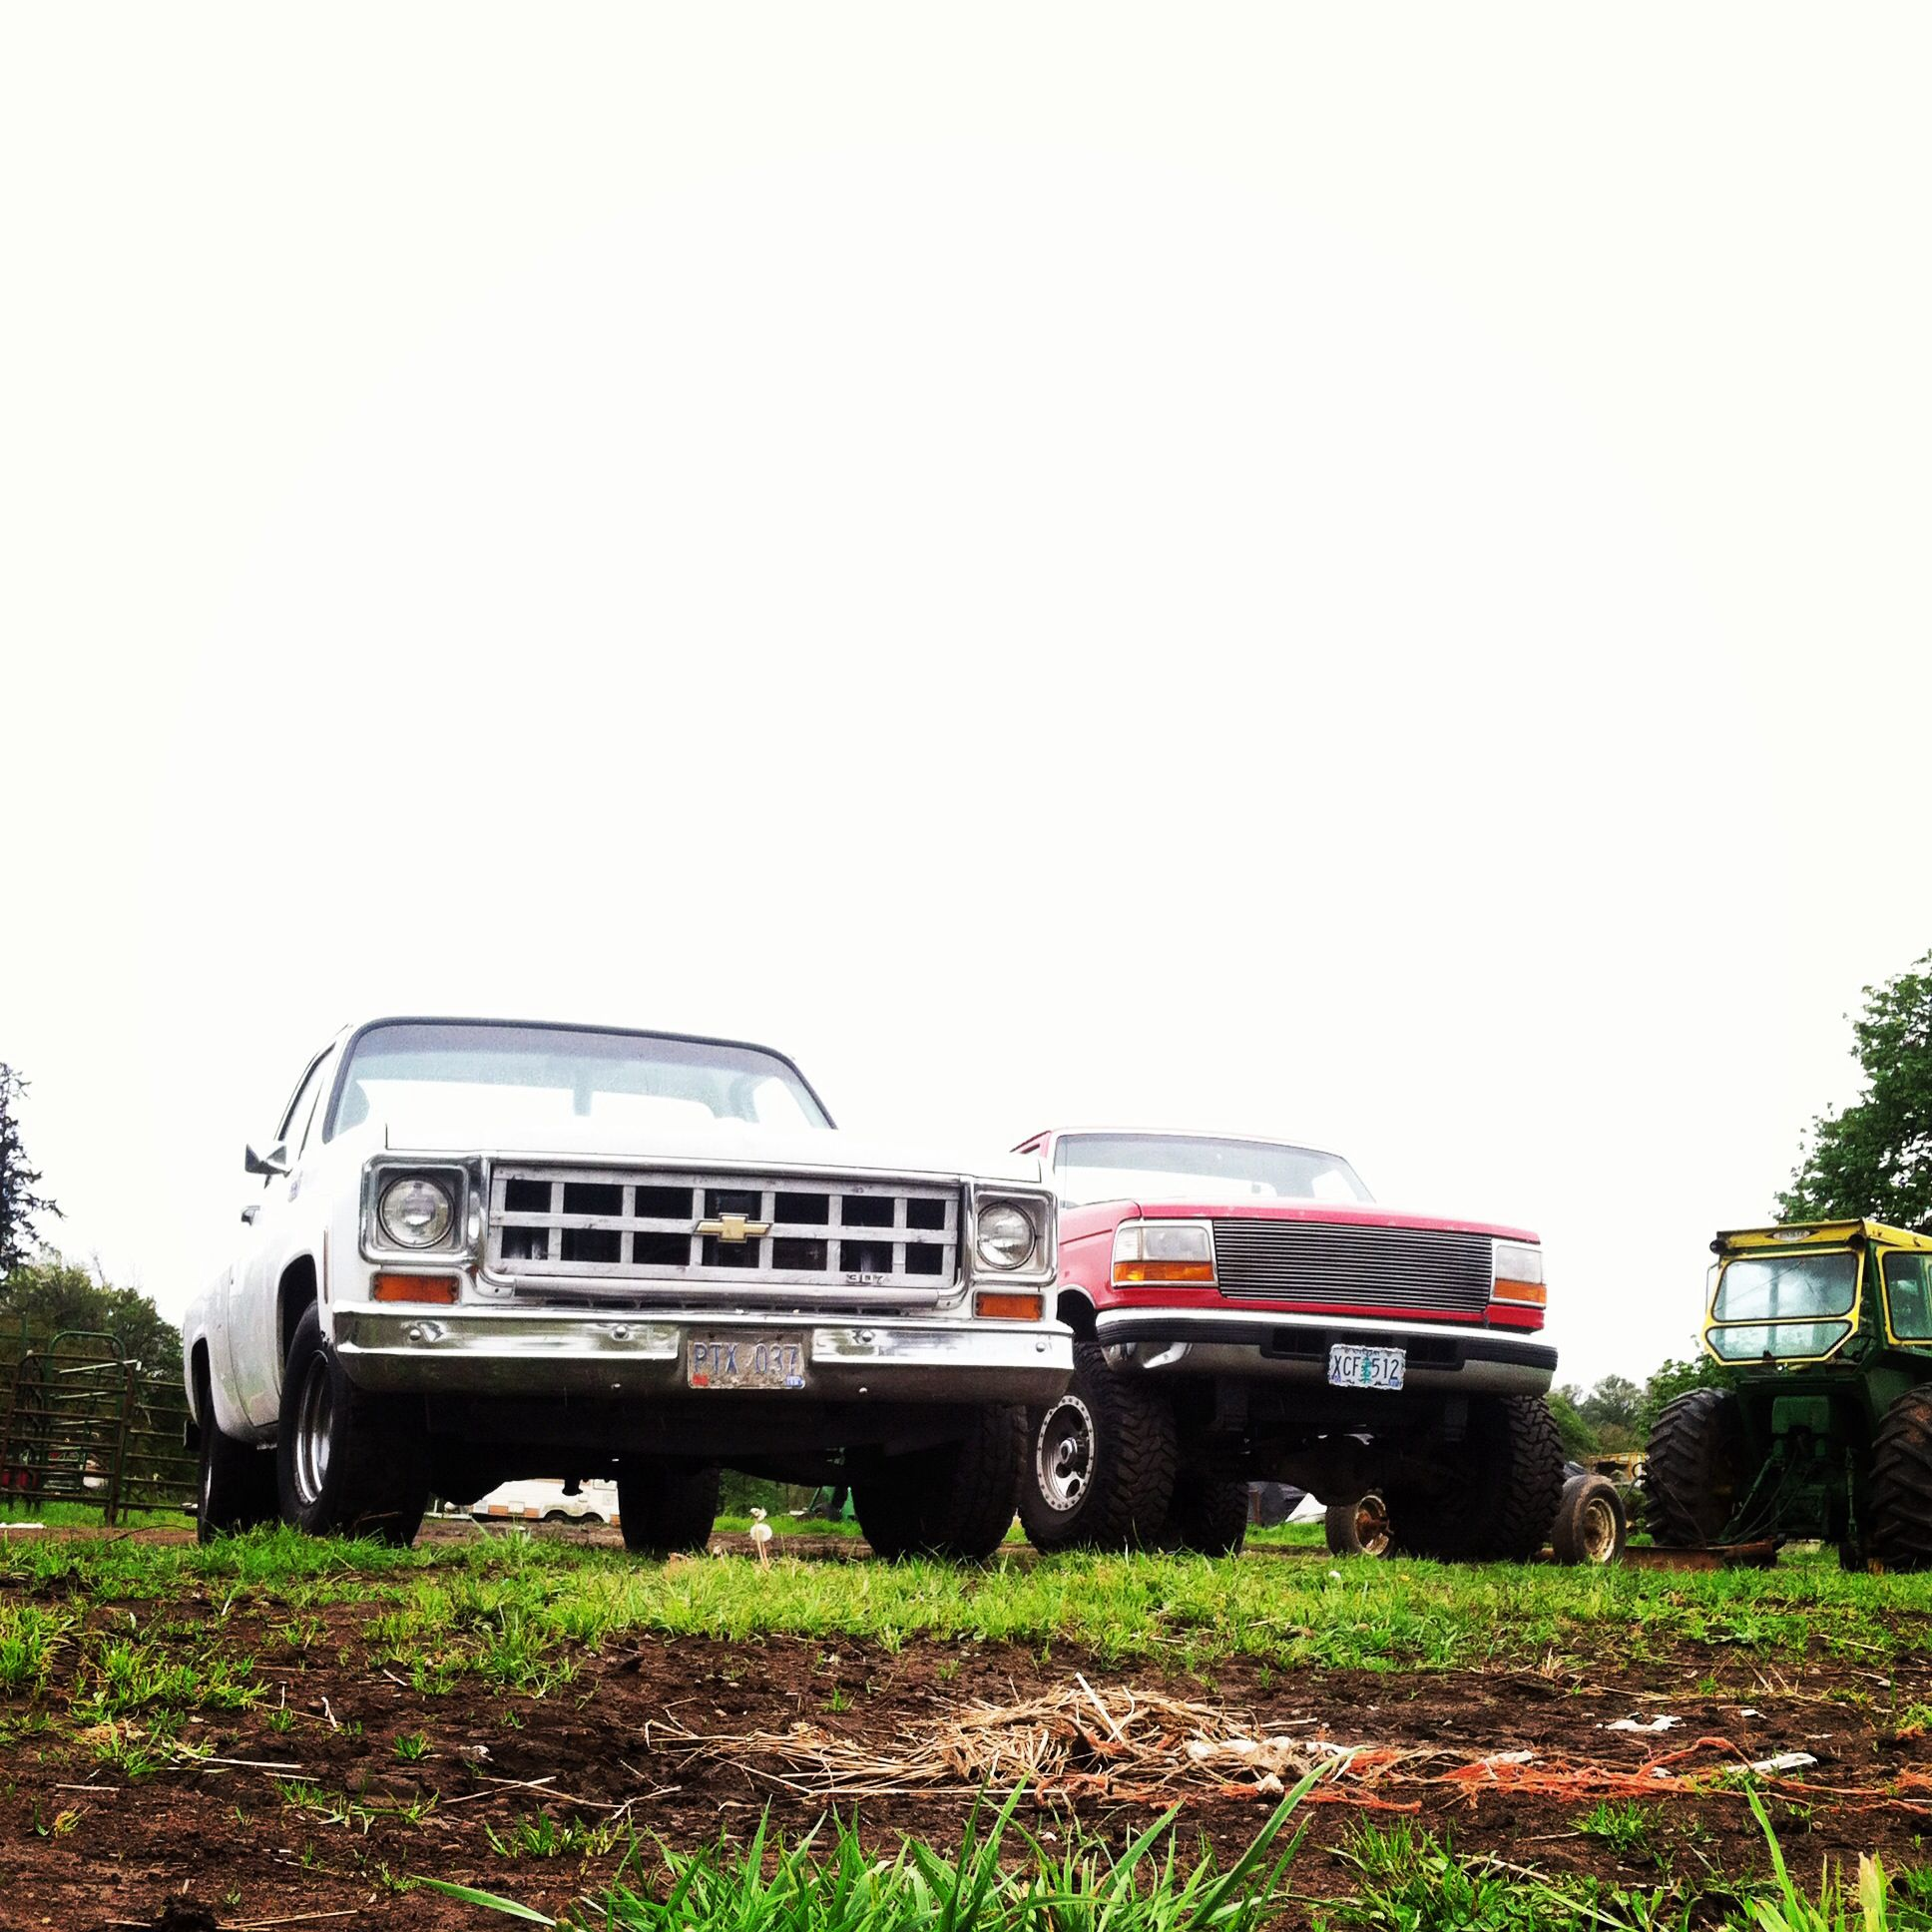 Trucks out in the pasture